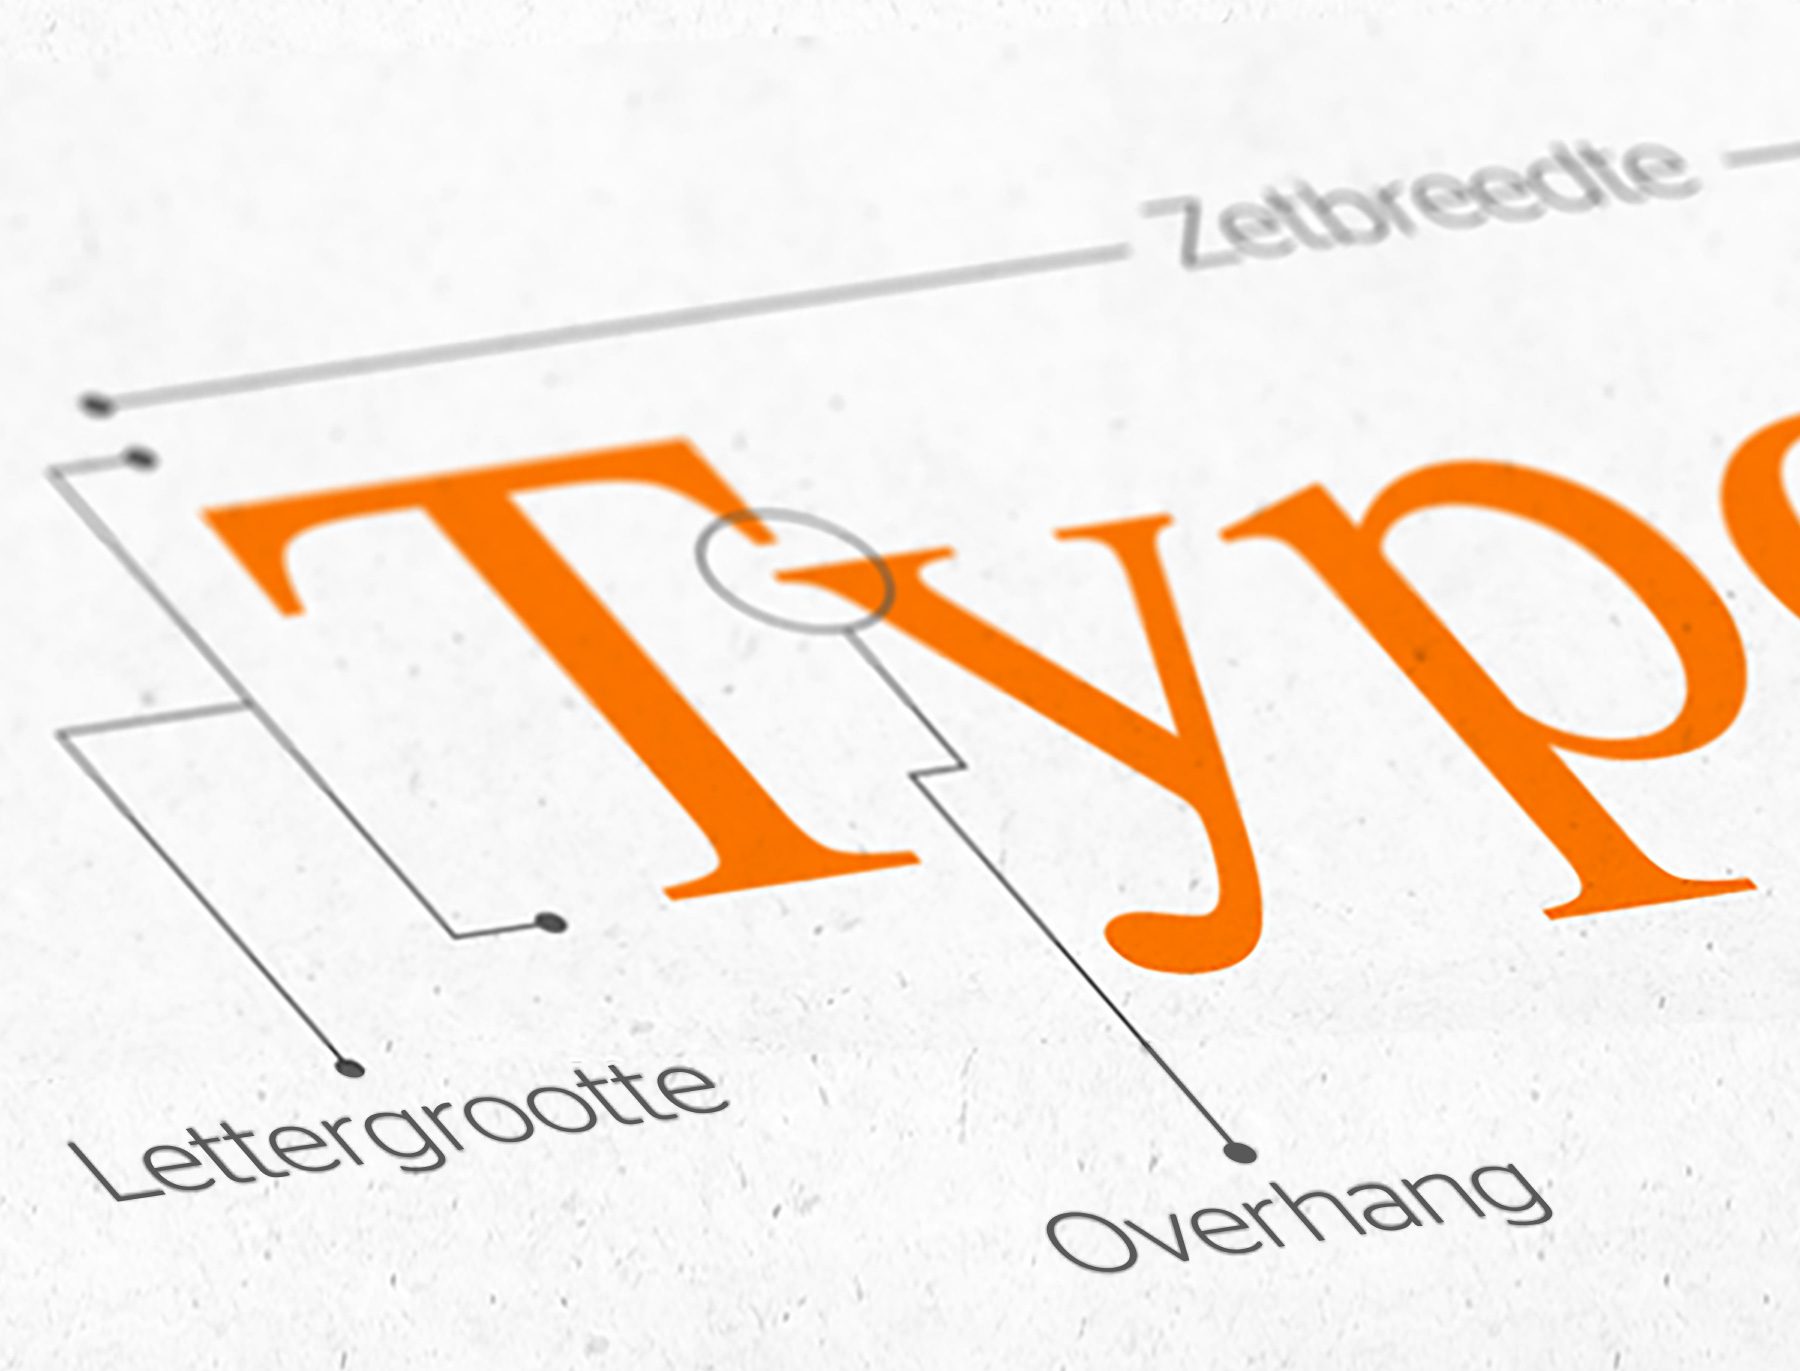 freebiefriyay-week-29 freebie-typografiecheatsheet